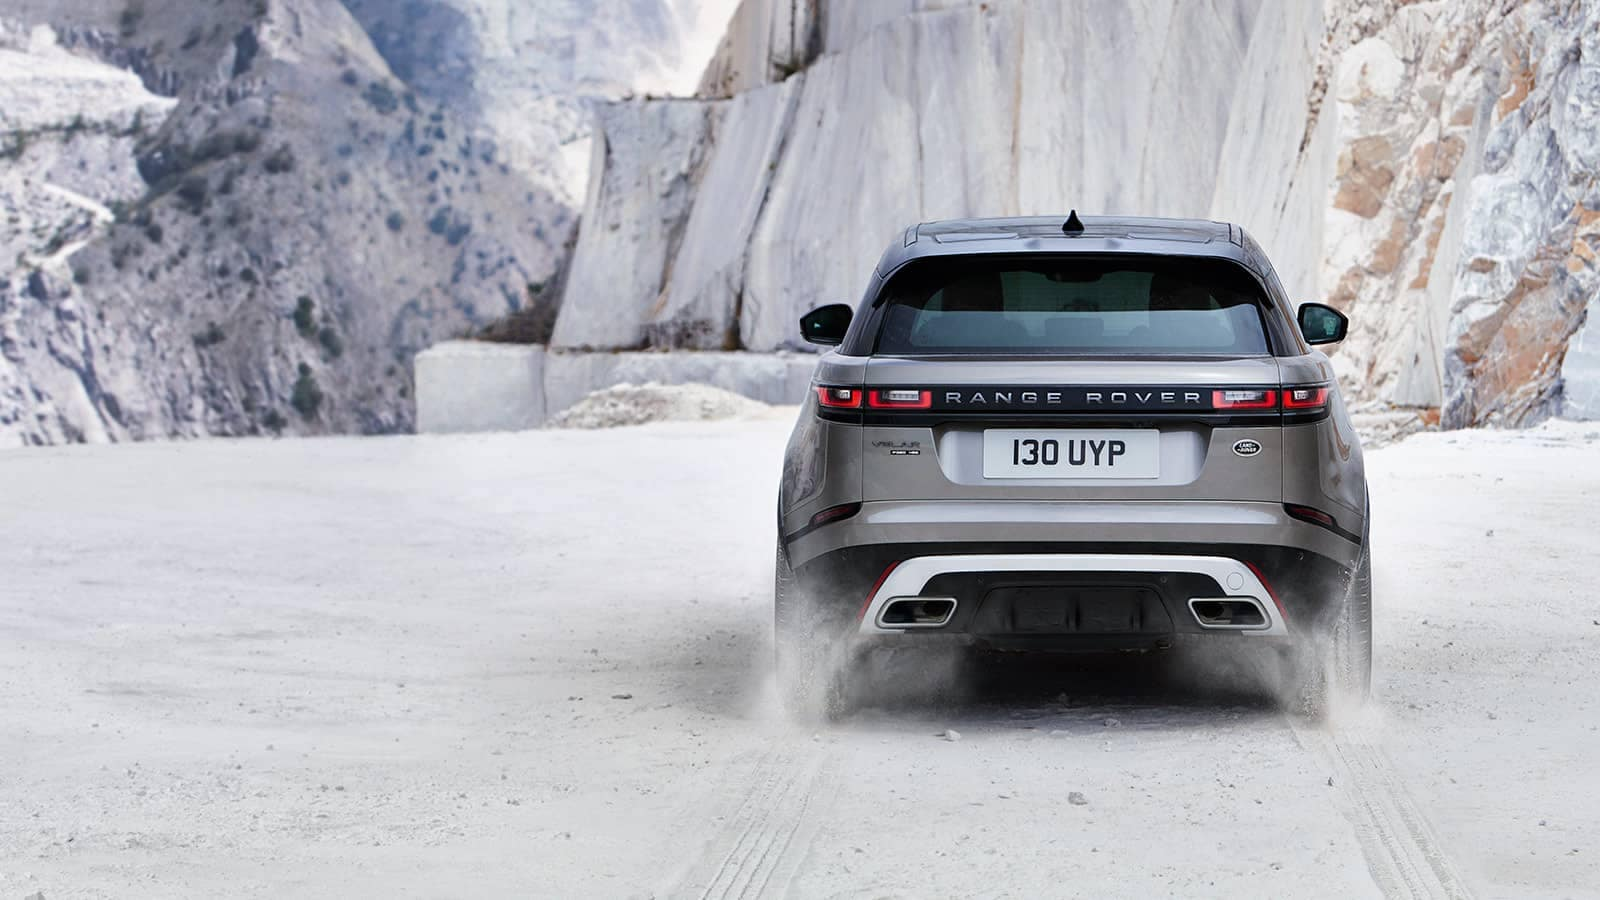 2019-Land-Rover-Range-Rover-Velar-Rear-View